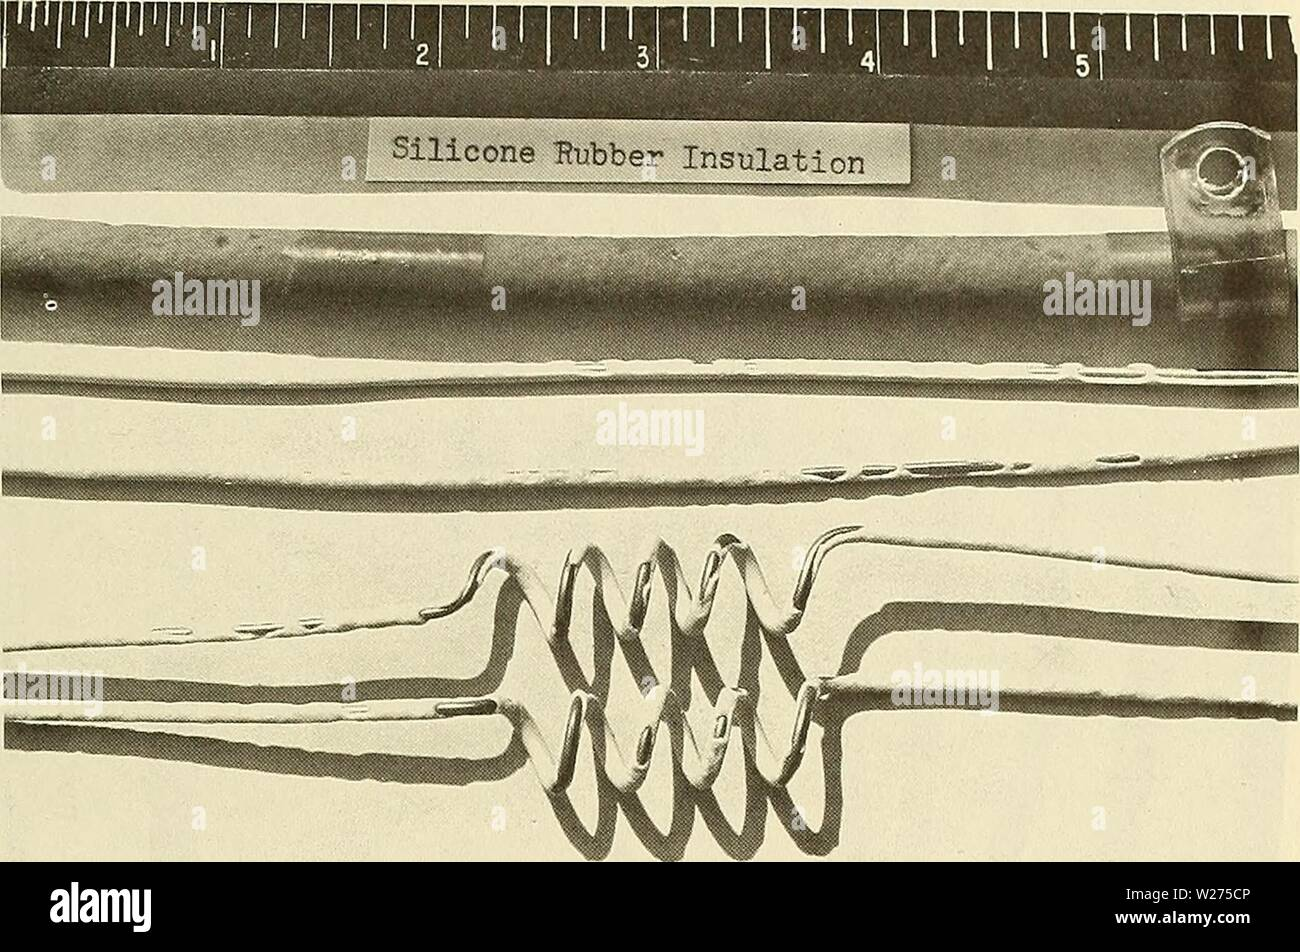 Archive image from page 40 of Deep-ocean biodeterioration of materials (1965). Deep-ocean biodeterioration of materials  deepoceanbiodete02mura Year: 1965  Figure B-18. Wire showing through silicone rubber insulation where the material was deteriorated by nibbling of marine organisms. Stock Photo